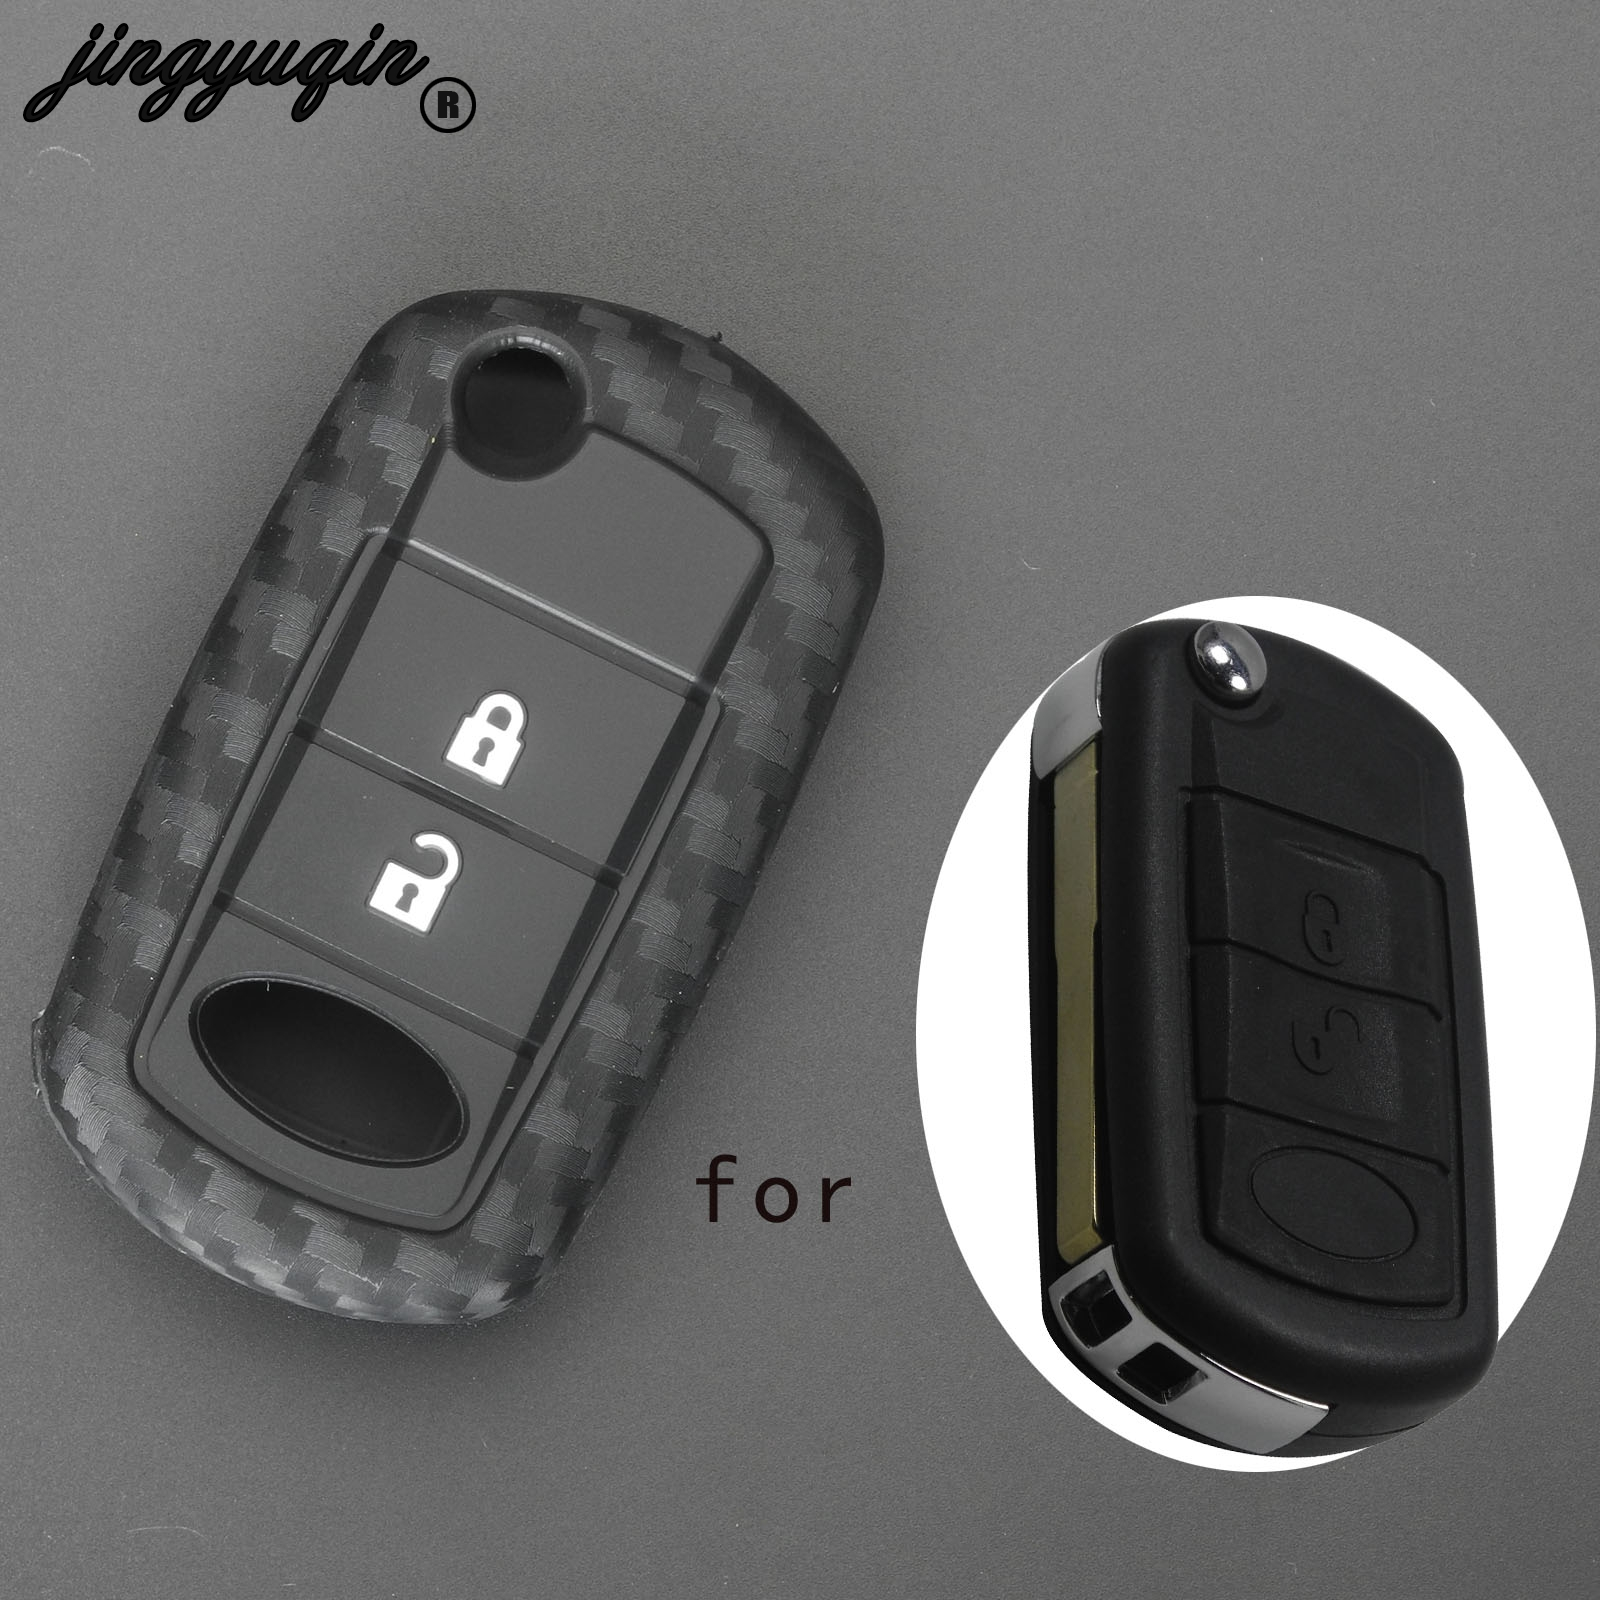 Jingyuqin Carbon Fiber Silicone Car Key Case Fob Cover For LAND ROVER Range Rover Sport LR3 Discovery Protected 3 Buttons